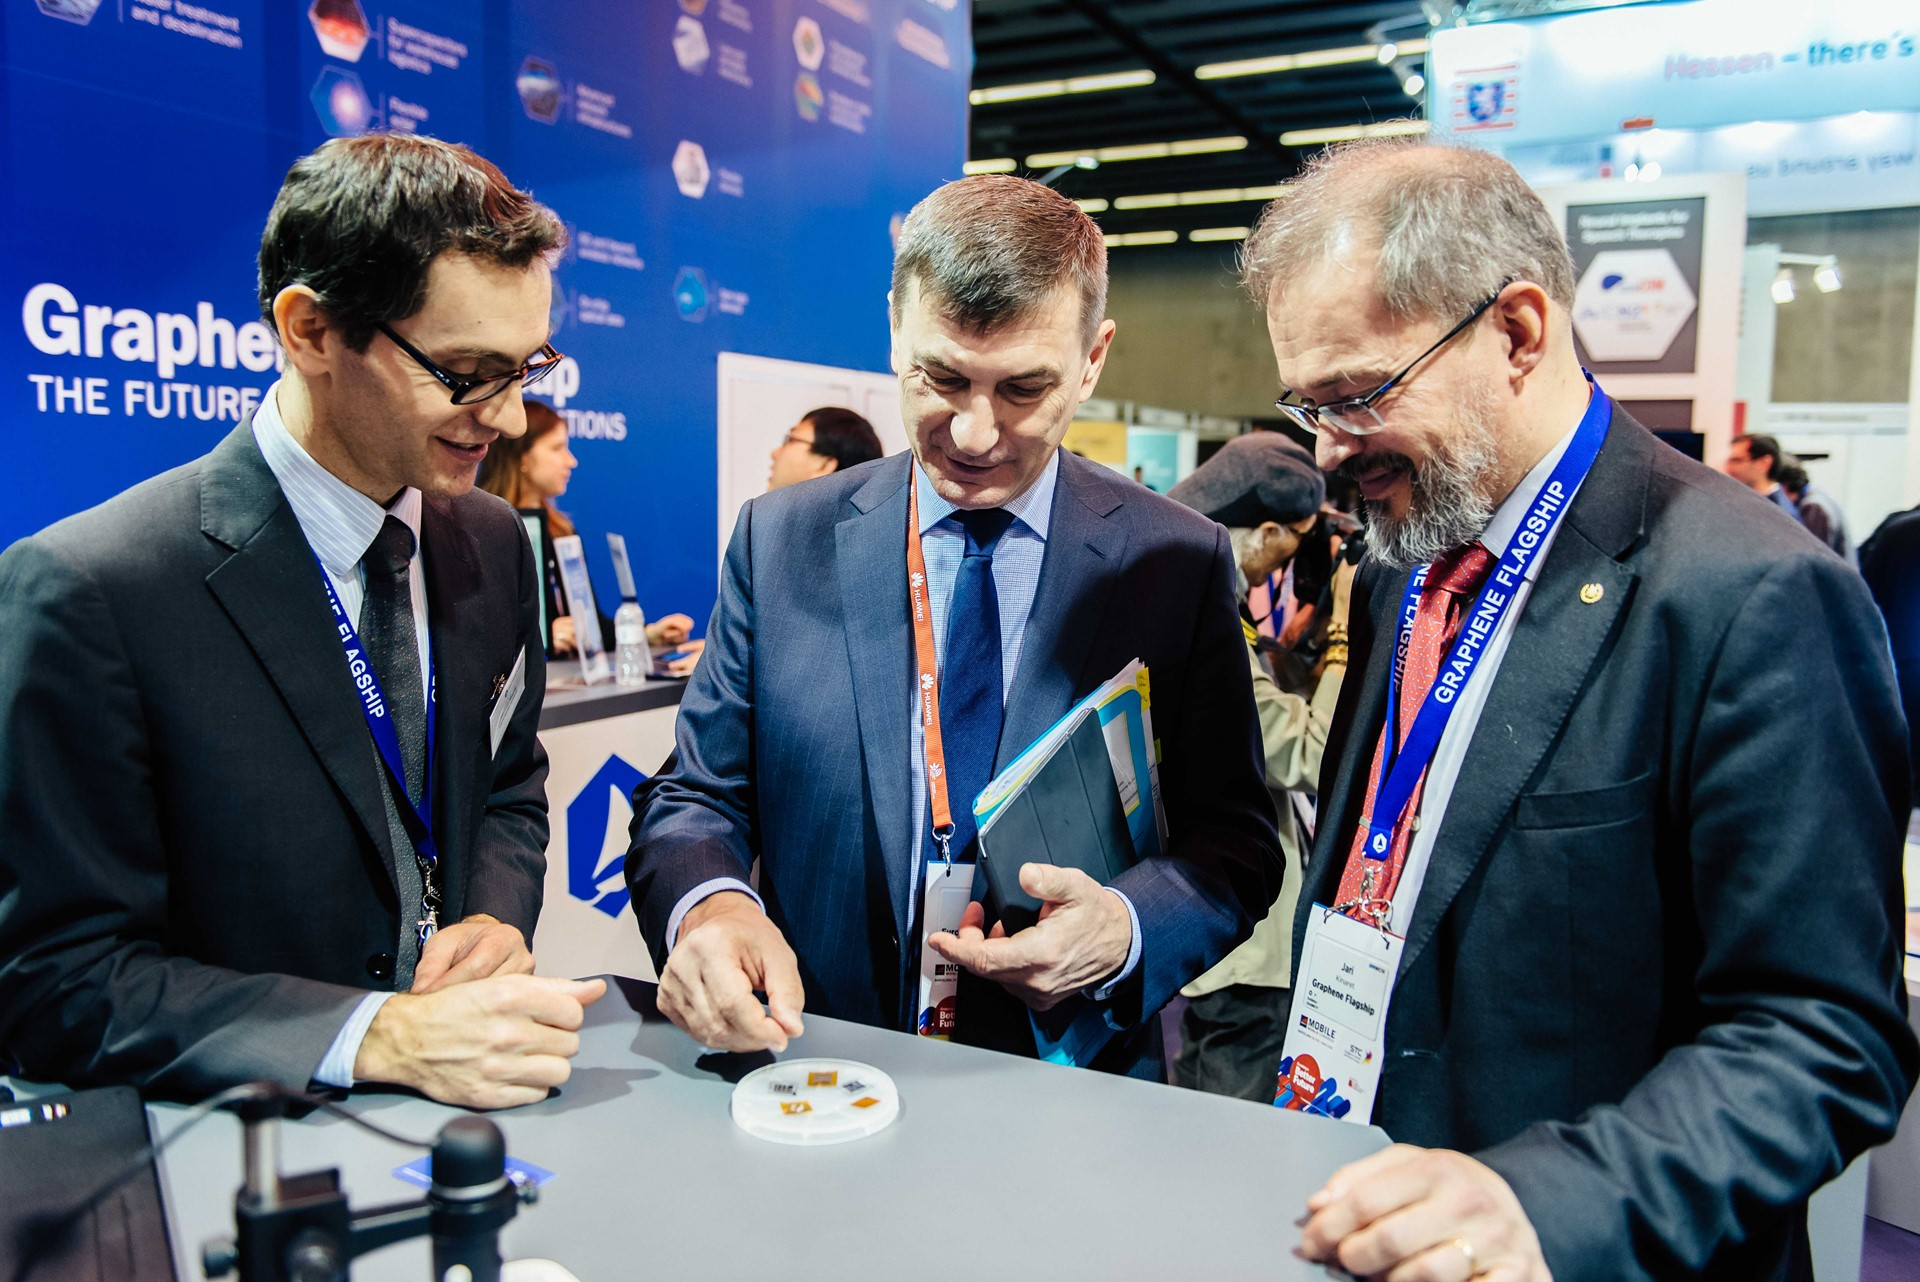 EU Commission Vice President Andrus Ansip visits the Graphene Pavilion at Mobile World Congress 2018